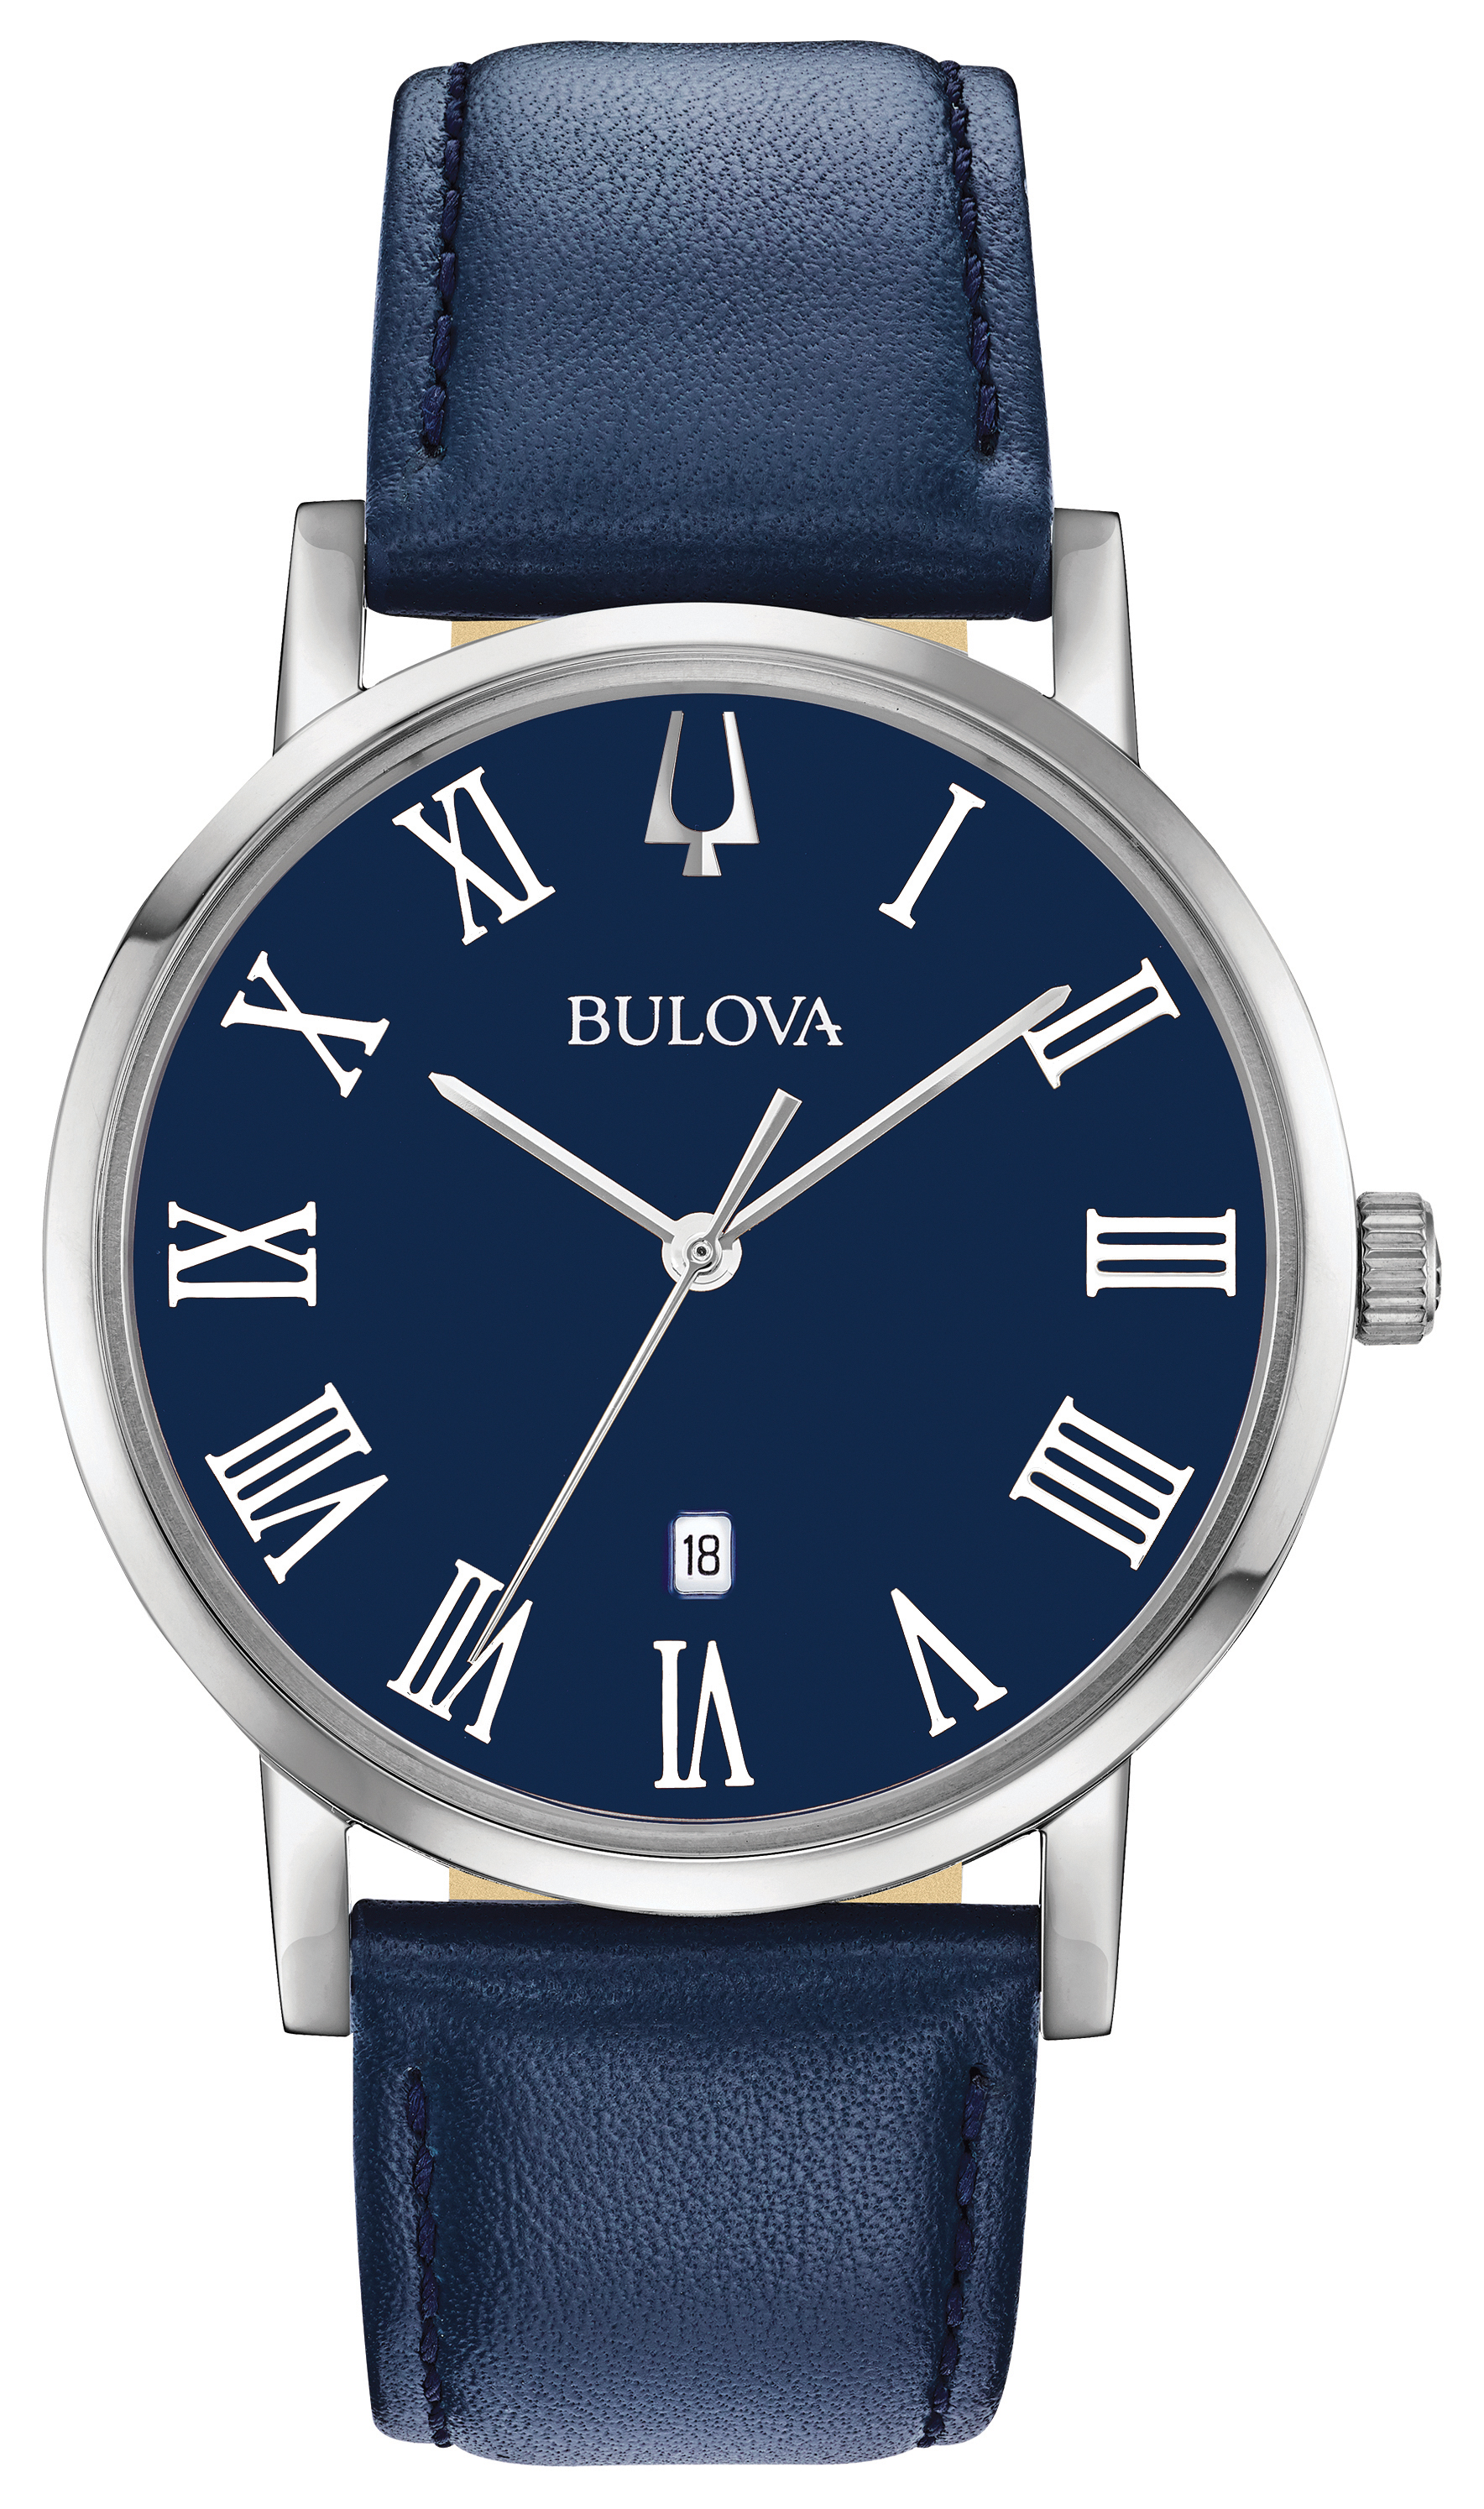 Bulova Watch for Man - Stainless steel & Dark blue dial with roman markers